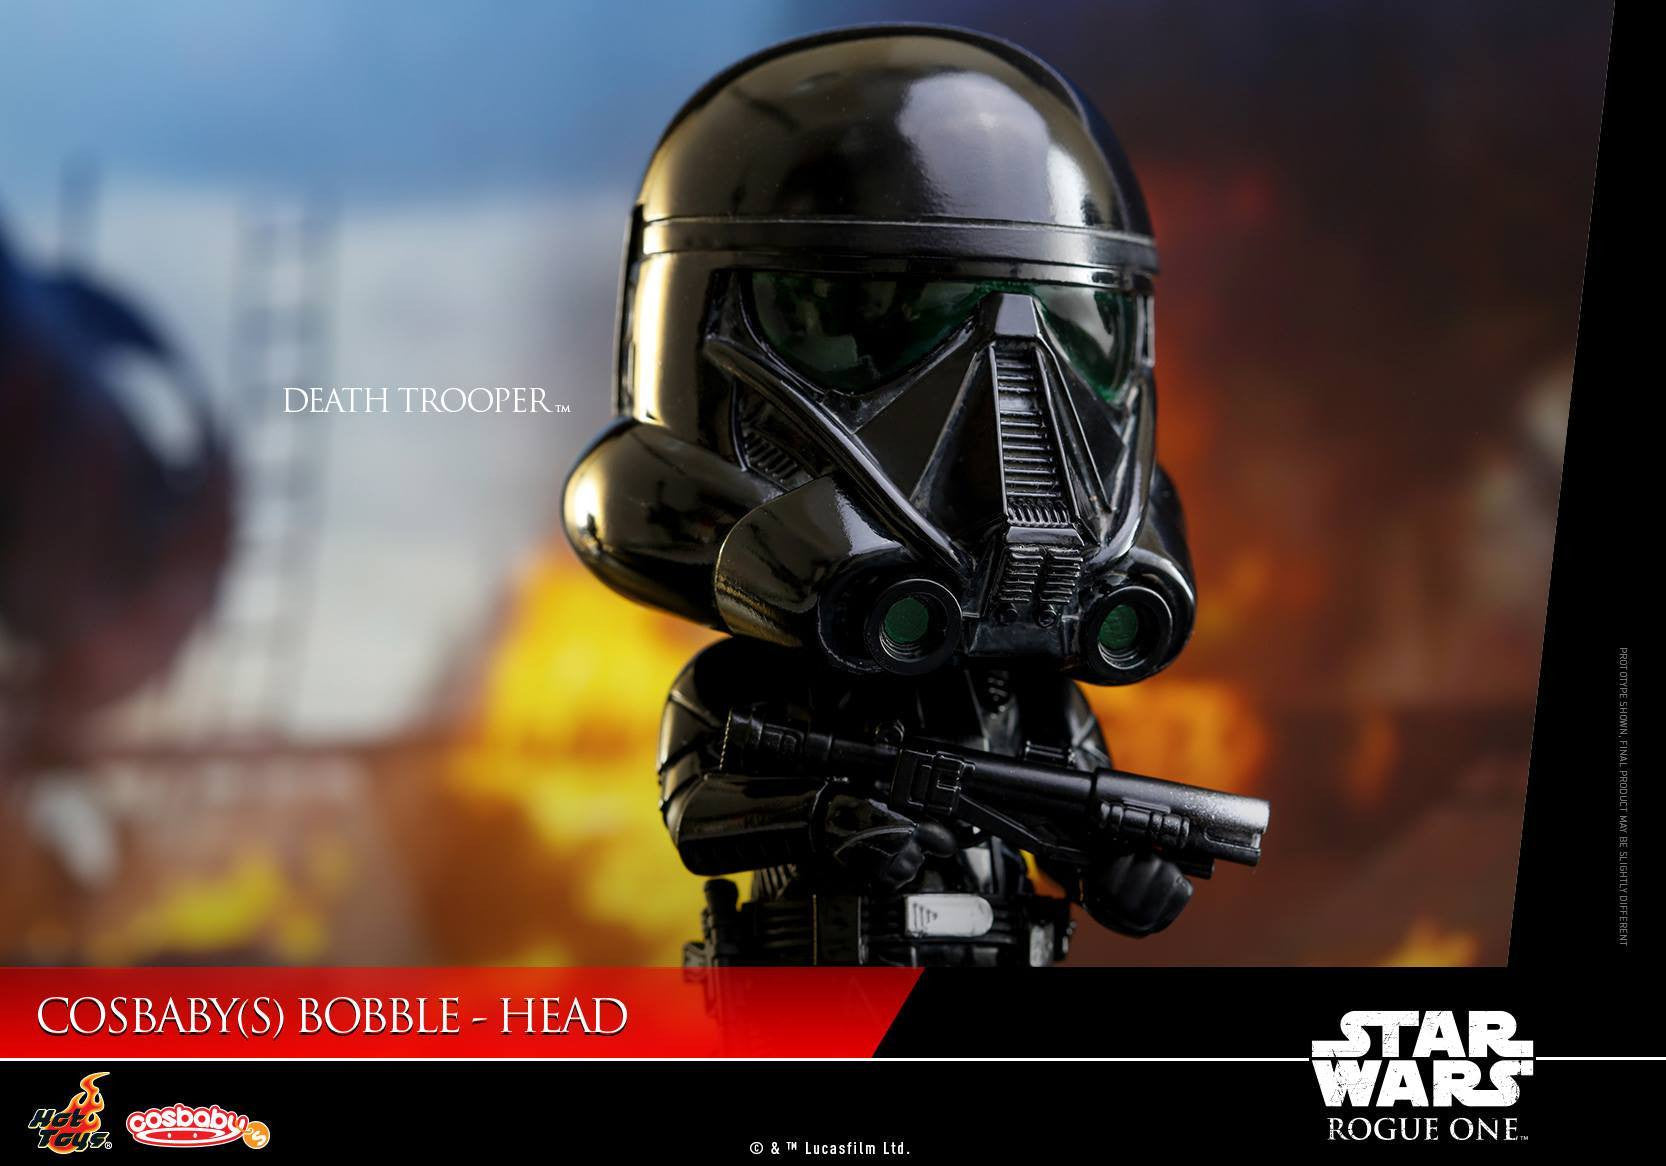 (IN STOCK) Hot Toys - COSB330 - Rogue One: A Star Wars Story - Death Trooper Cosbaby Bobble-Head - Marvelous Toys - 4